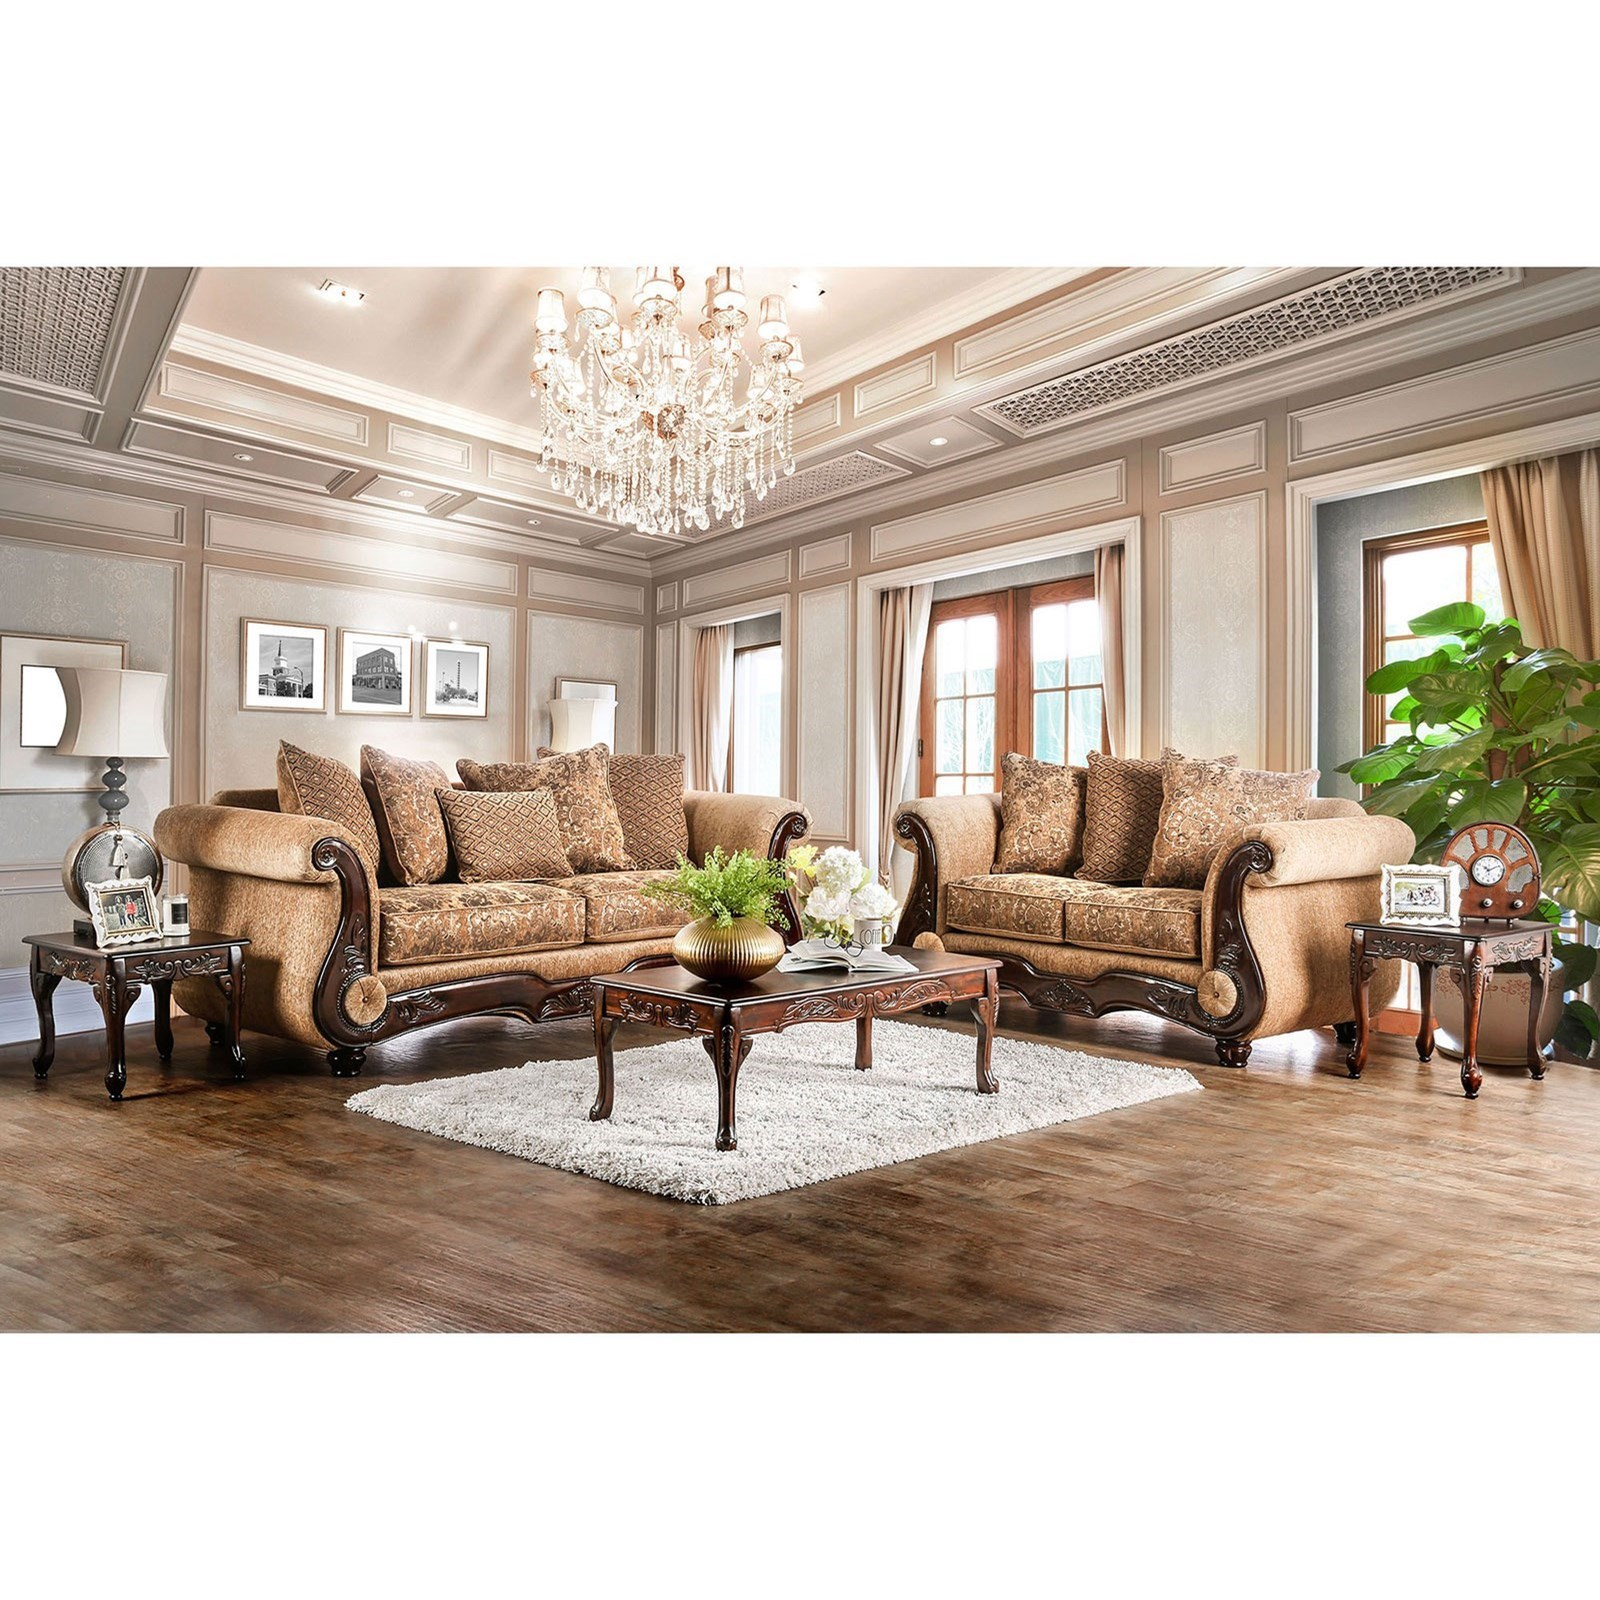 Nicanor Sofa and Love Seat at Household Furniture